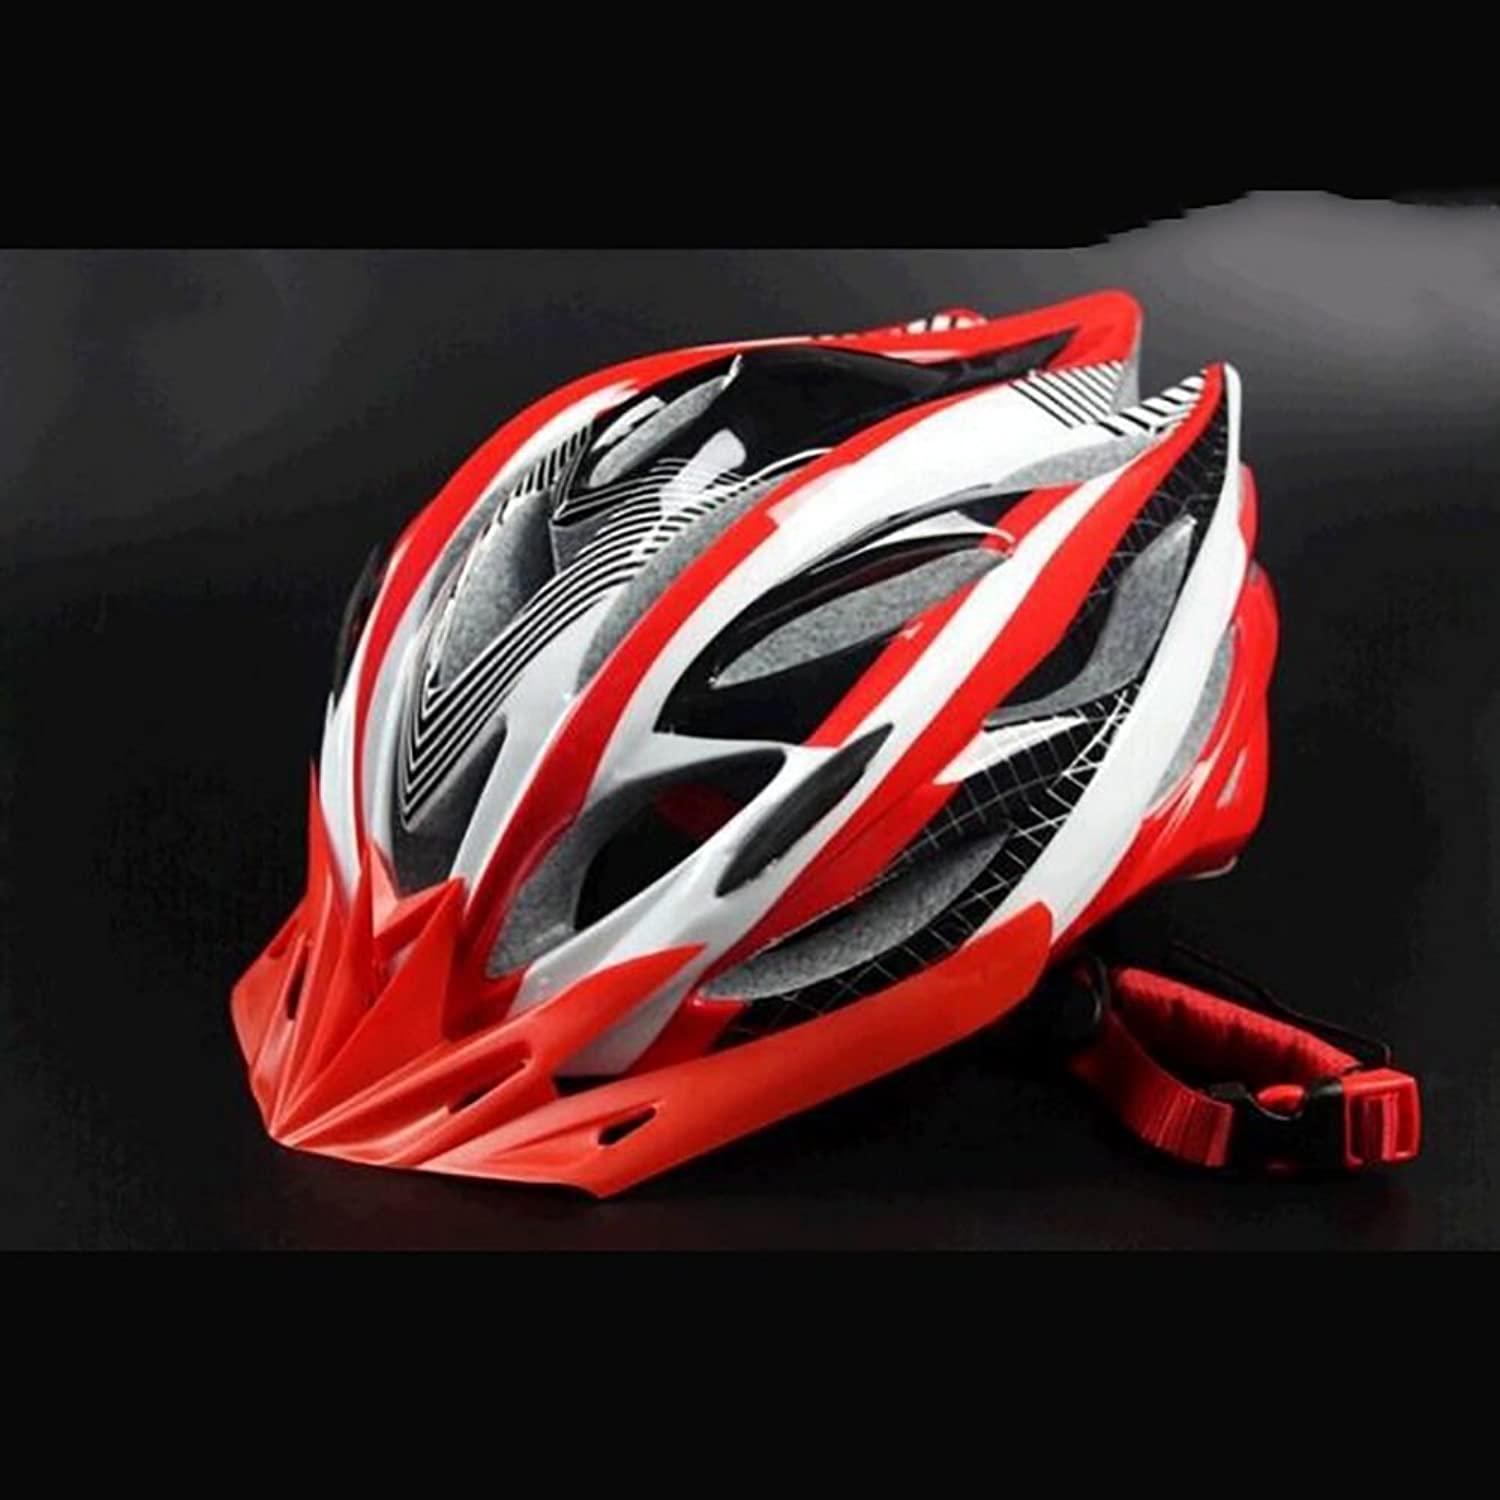 TOYM US Cycling Road Bike Ultralight OnePiece Riding Helmet One Size 5763cm